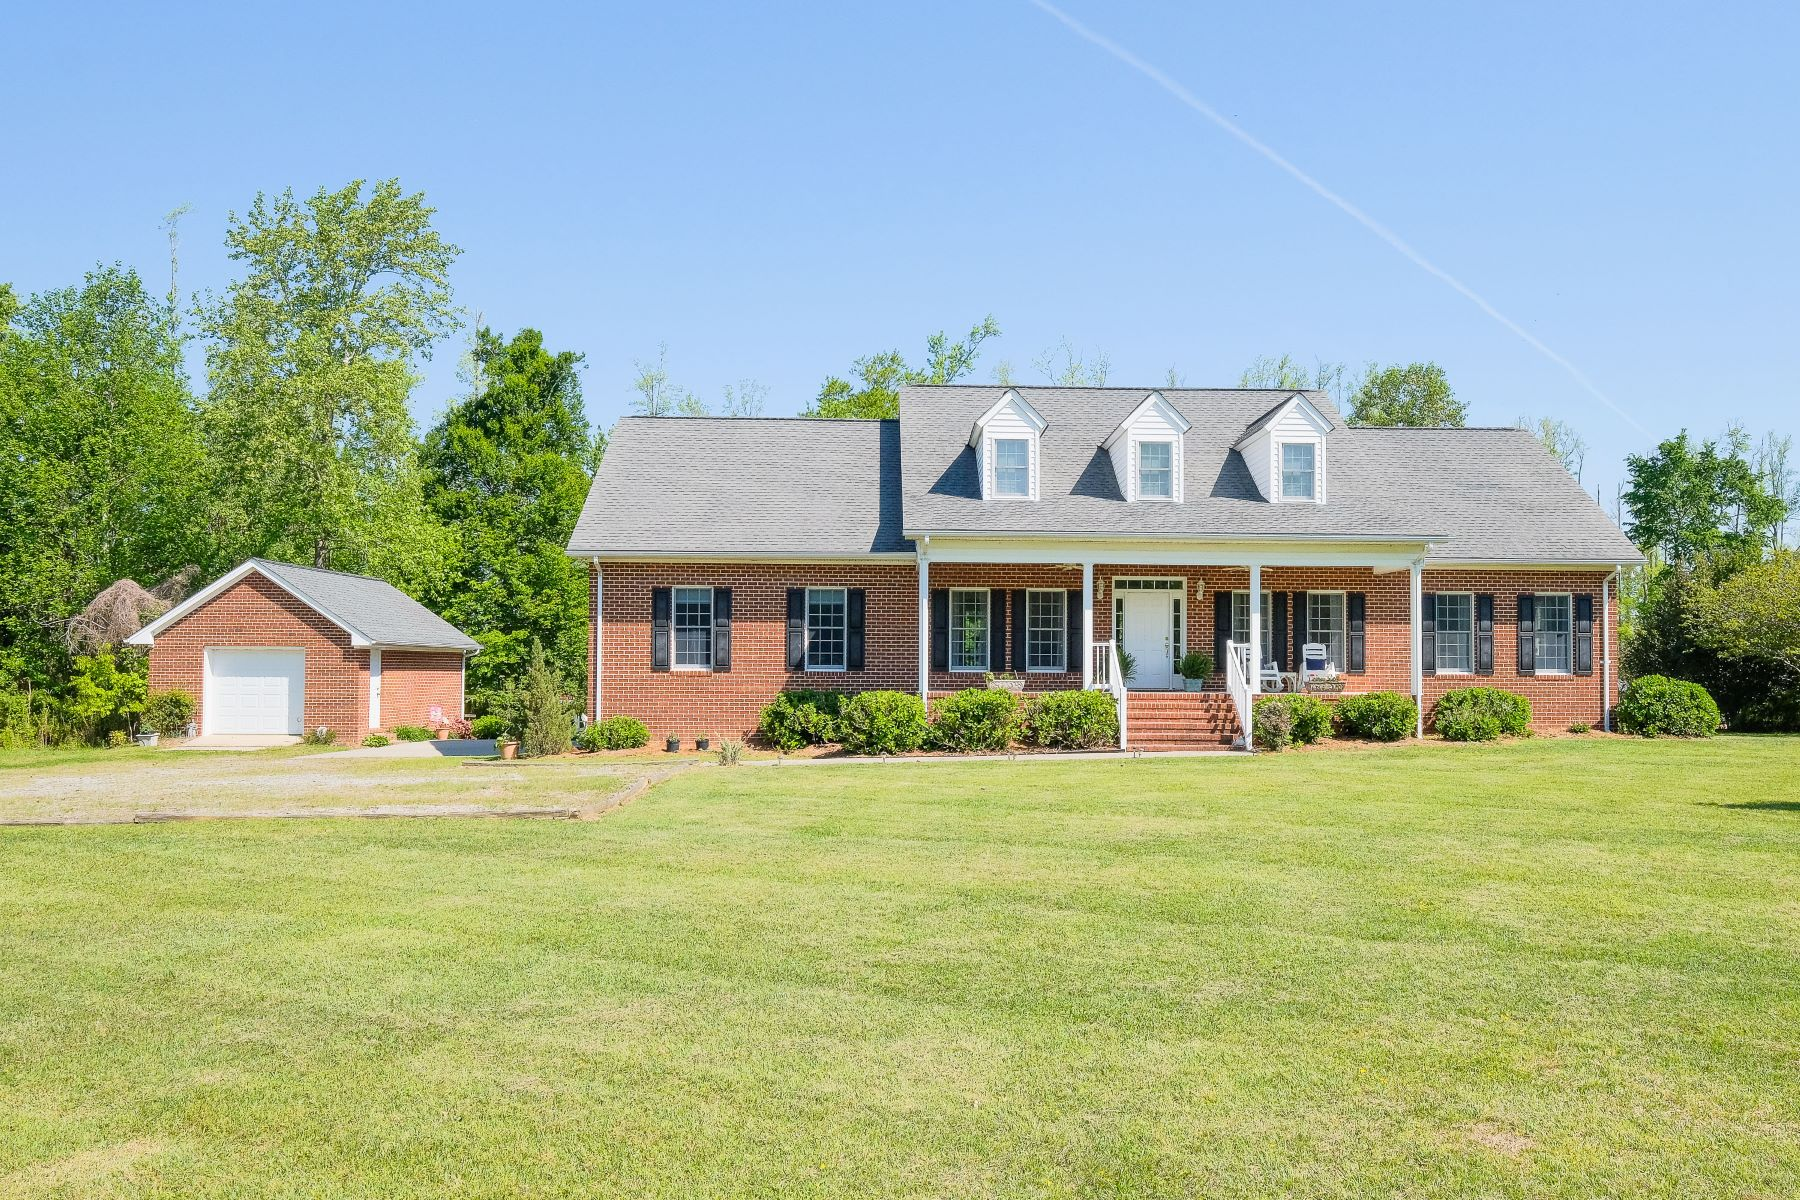 Single Family Home for Active at AWAY FROM CITY NOISE 244 Summerby Rd Roper, North Carolina 27970 United States